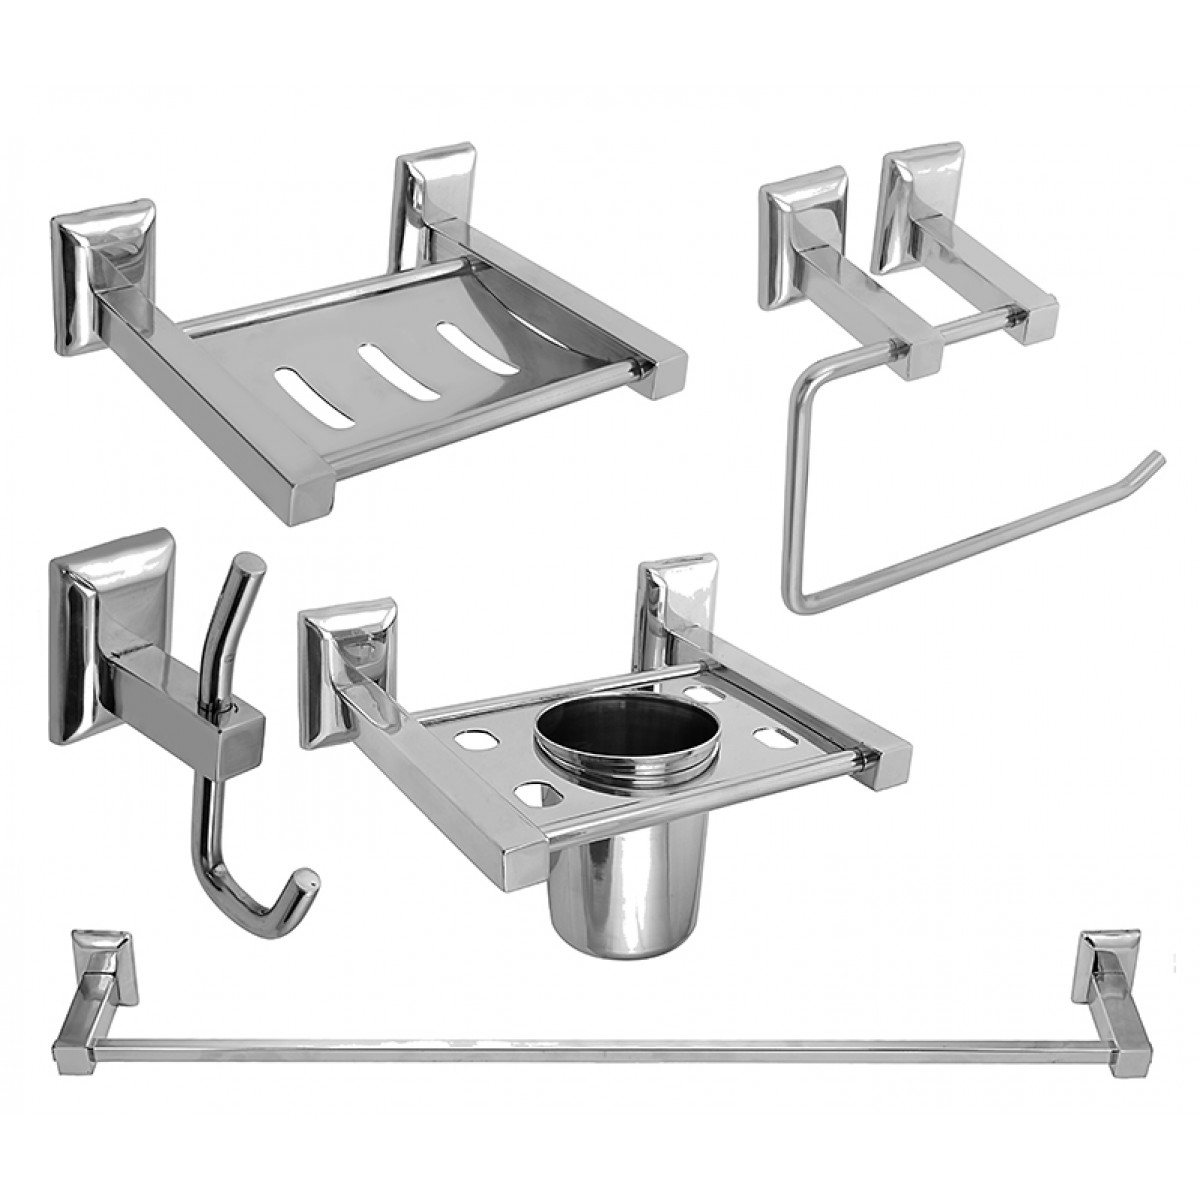 Buy online bath set bathroom accessories set steel for Bathroom decor catalogs